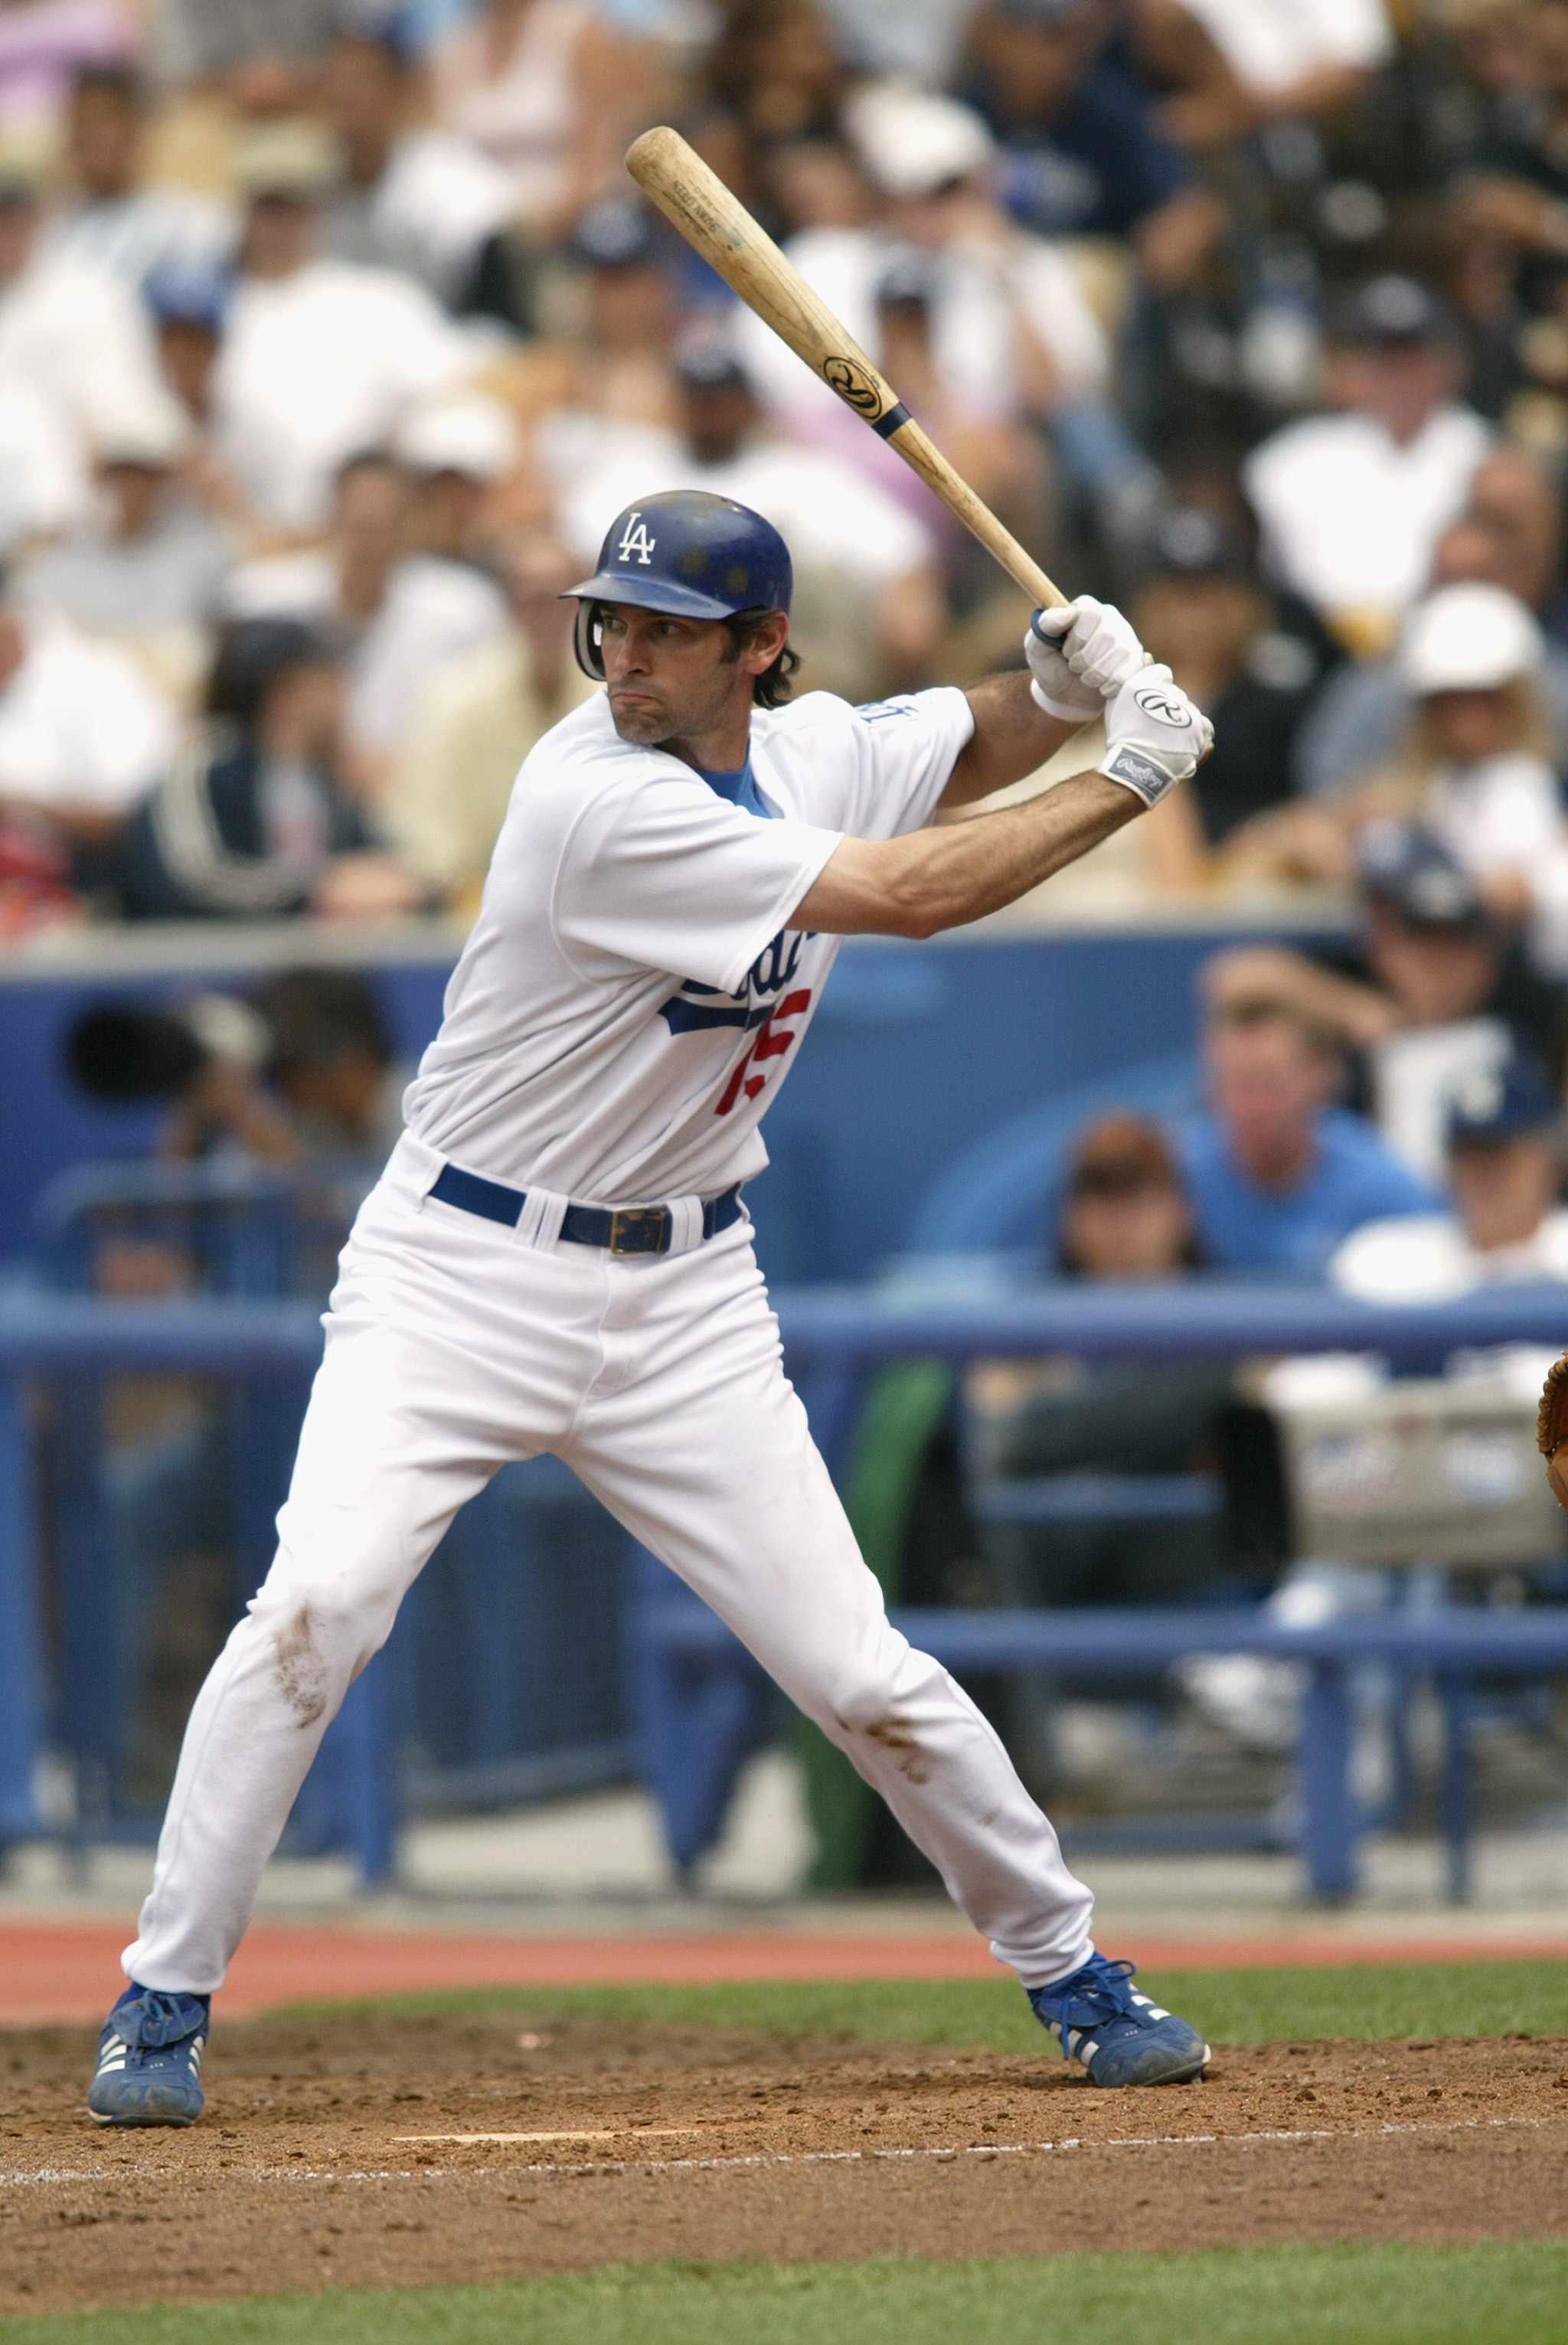 LOS ANGELES - JUNE 19:  First baseman Shawn Green #15 of the Los Angeles Dodgers at bat during the game against the New York Yankees on June 19, 2004 at Dodger Stadium in Los Angeles, California. The Yankees won 6-2.  (Photo by Streeter Lecka/Getty Images